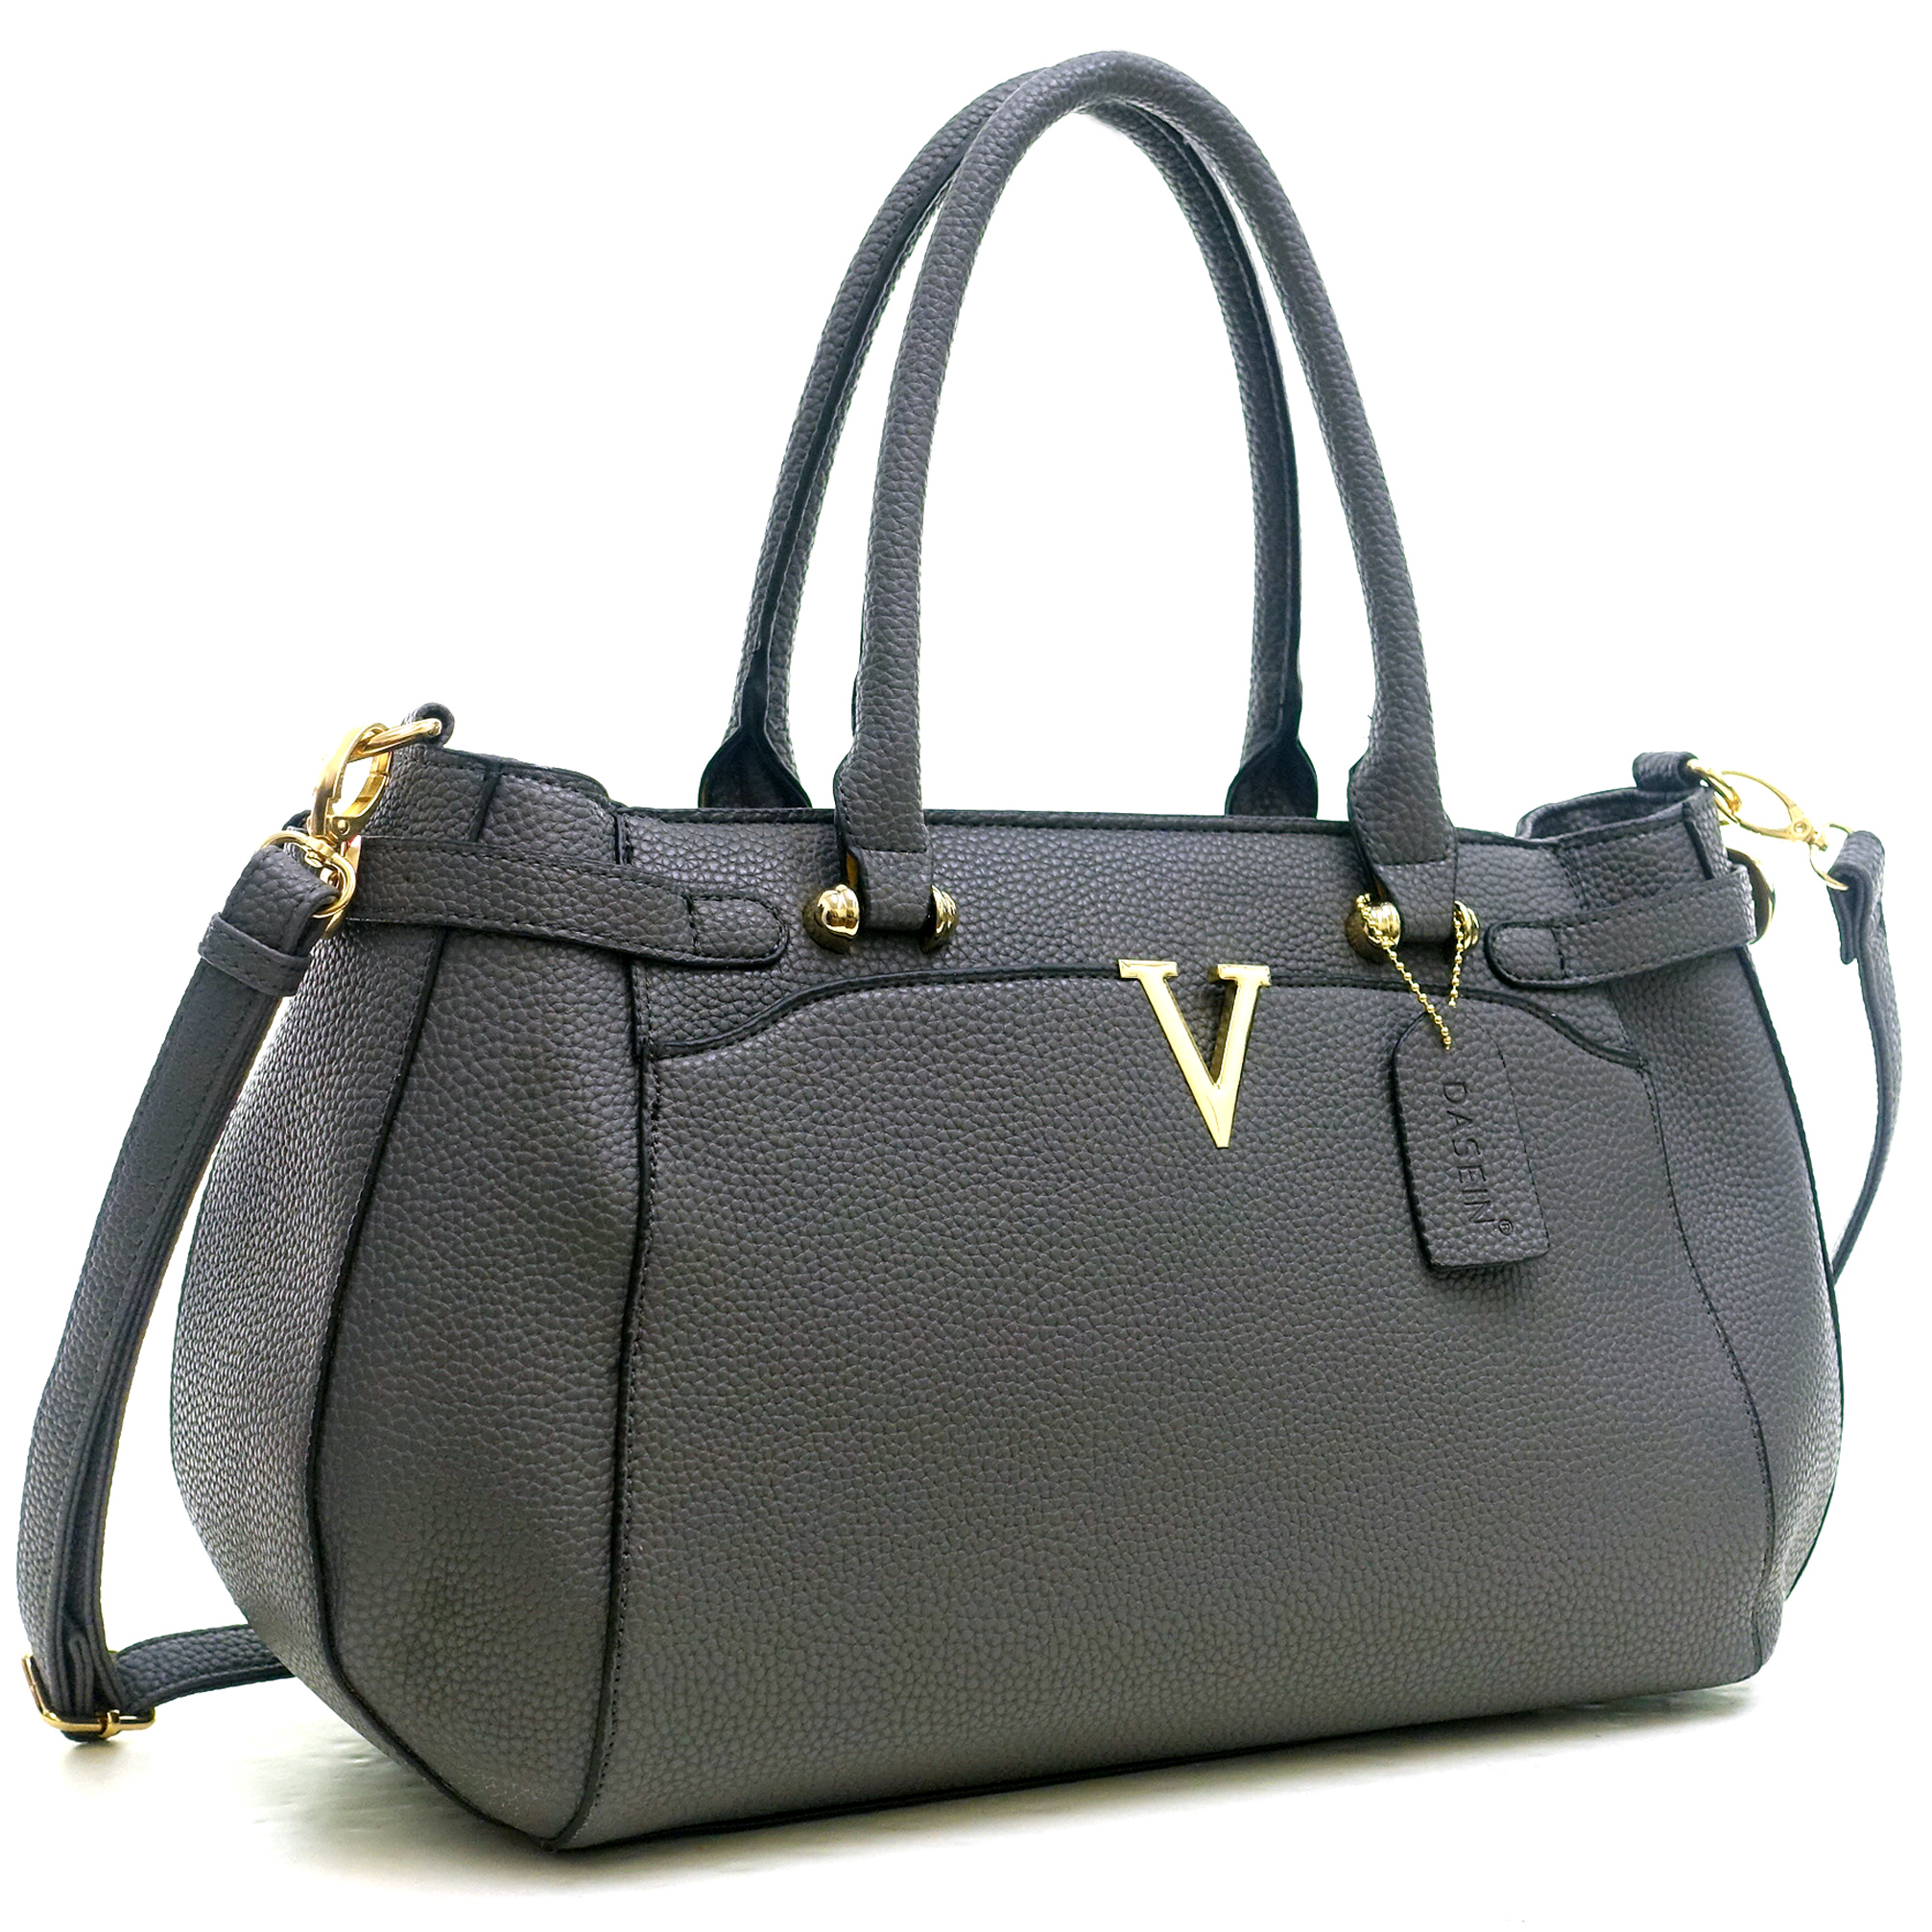 Patent Faux Leather V Shape Accent Satchel with Shoulder Strap